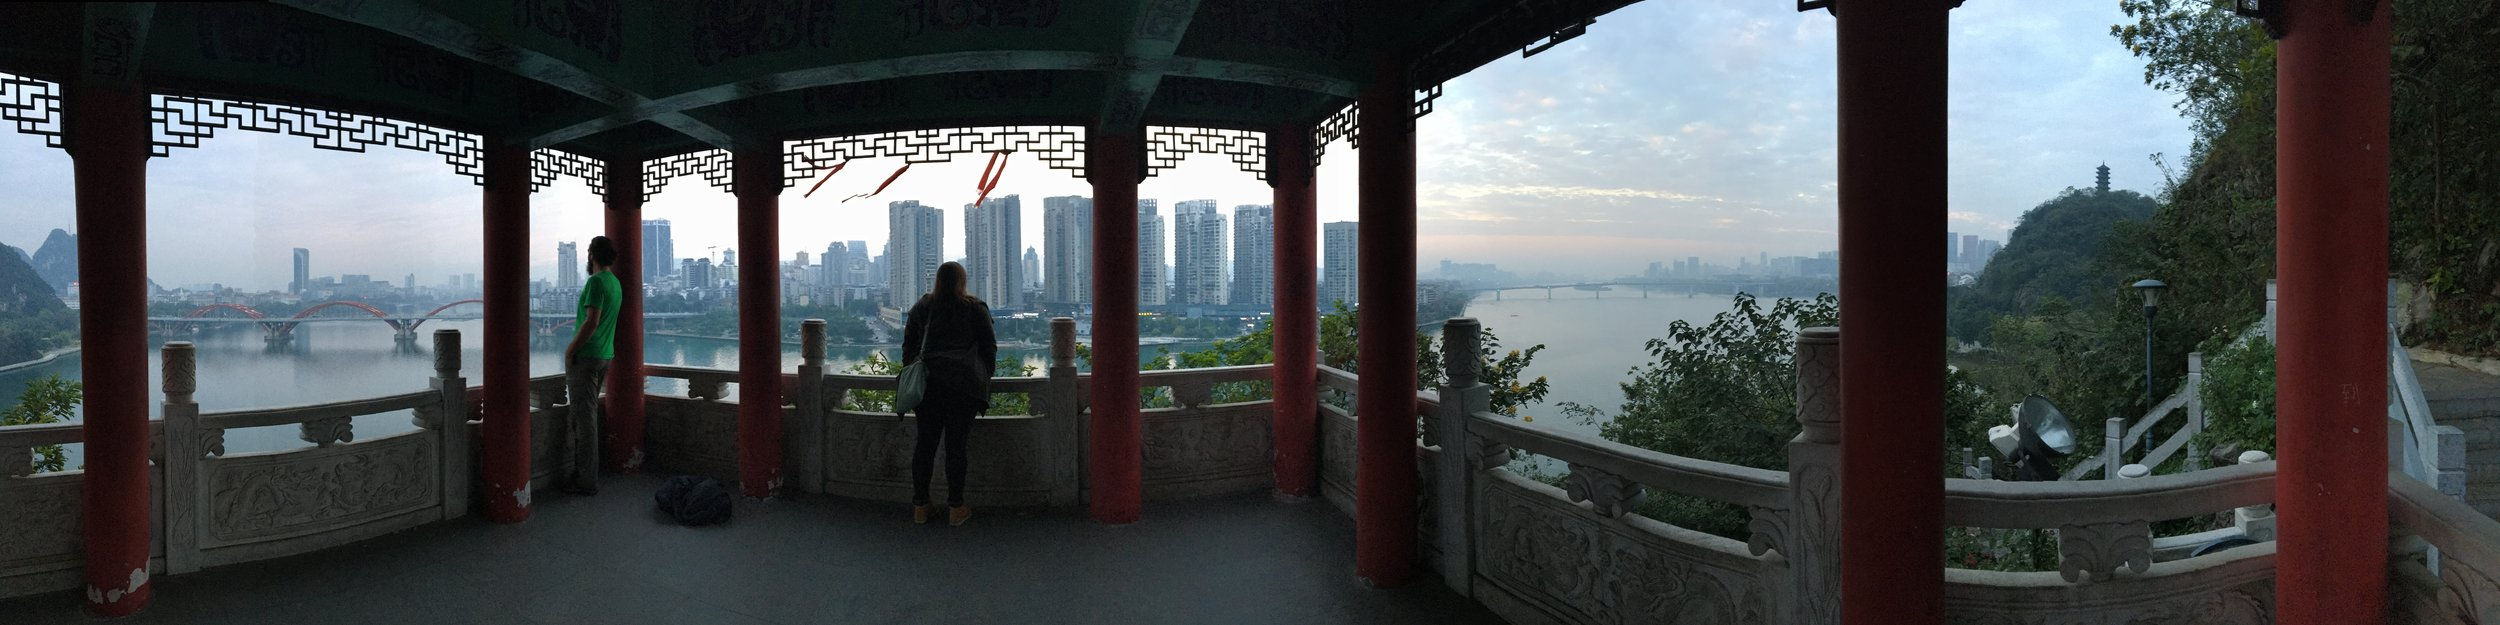 John and Liz overlooking Liuzhou